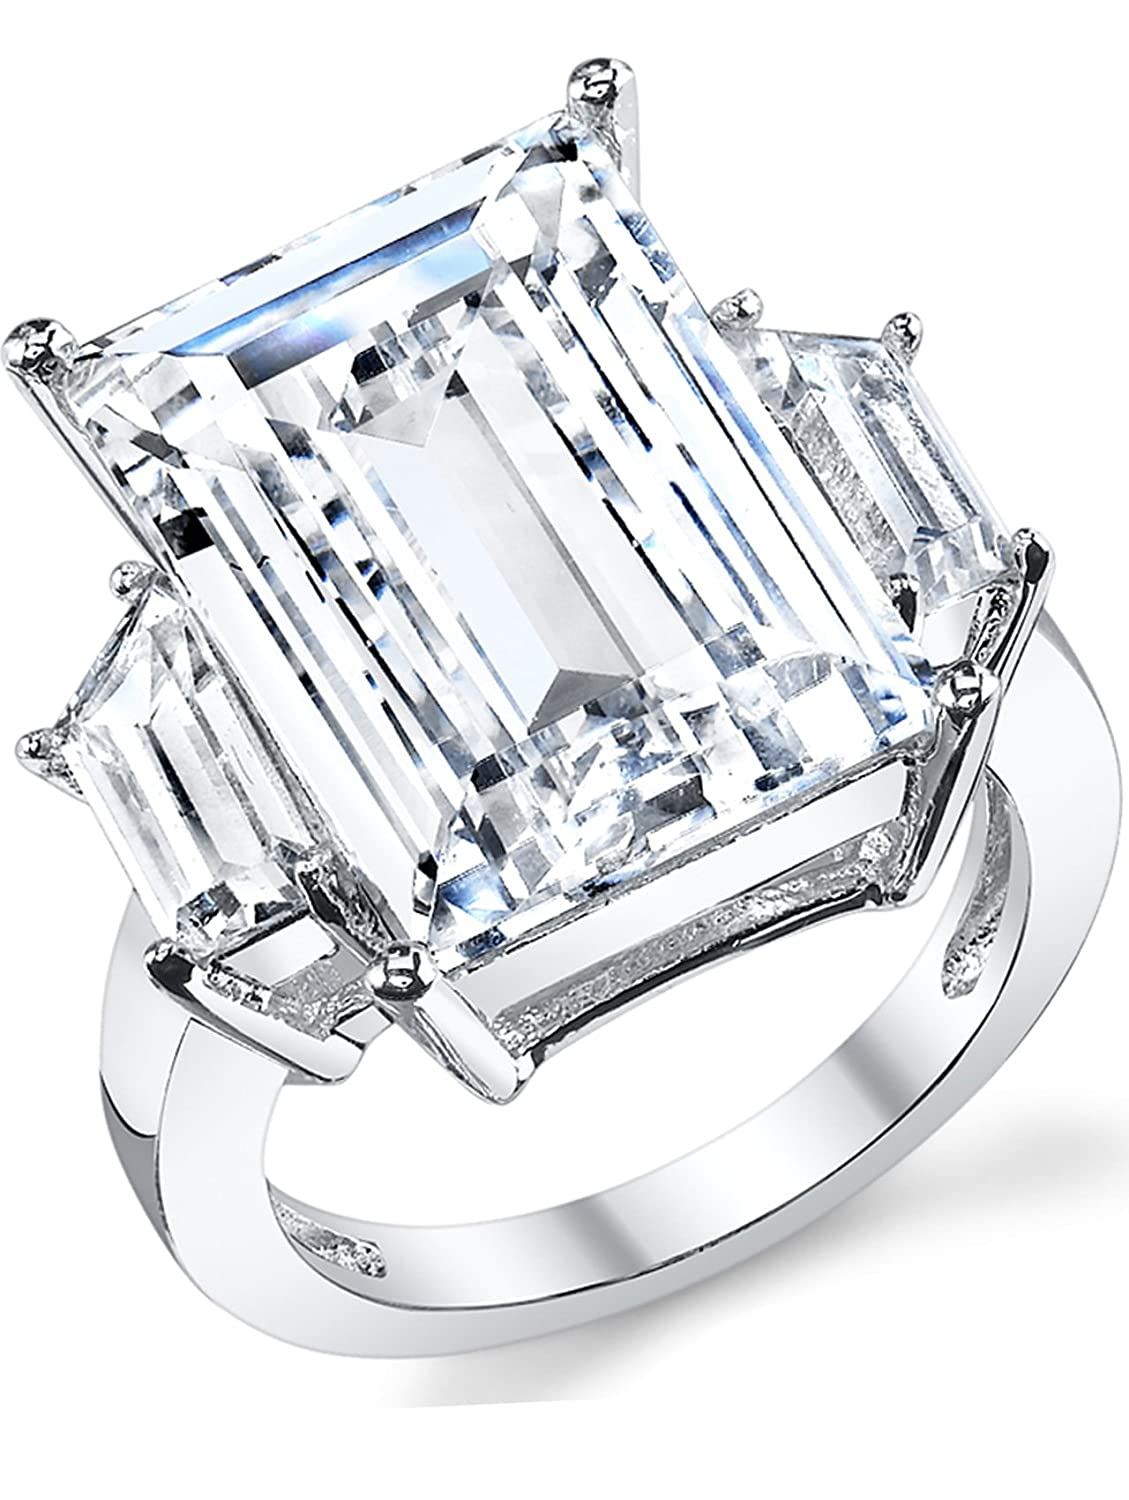 Kim Kardashian Sterling Silver Engagement Wedding Ring With Large Carat Emerald Cut Cubic Zirconia Cz